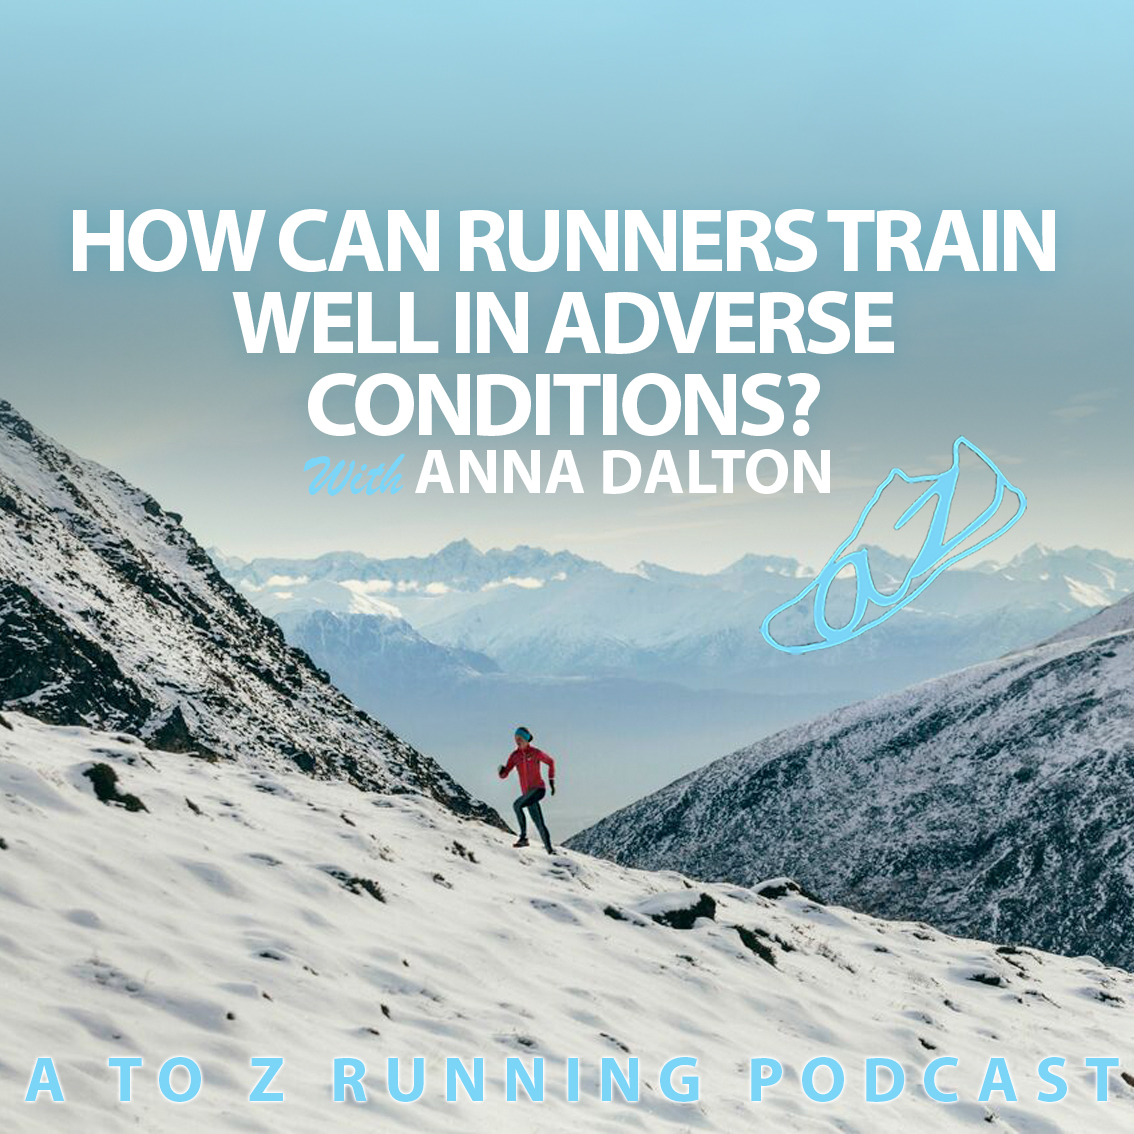 how can runners train well in adverse conditions?